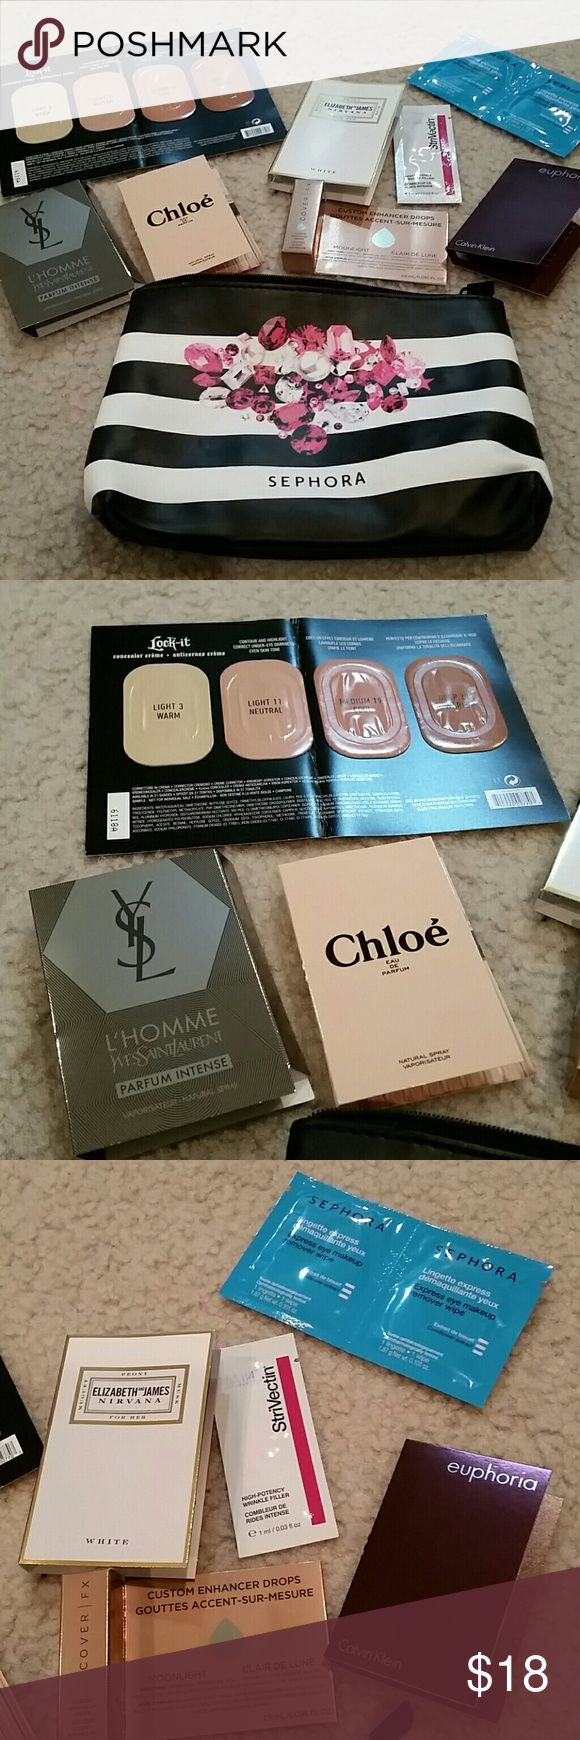 Bunch of high end makeup samples & sephora clutch A whole bunch of brand new high end make up samples and a Sephora make up clutch. All brand new. No PayPal or trades. Sephora Makeup